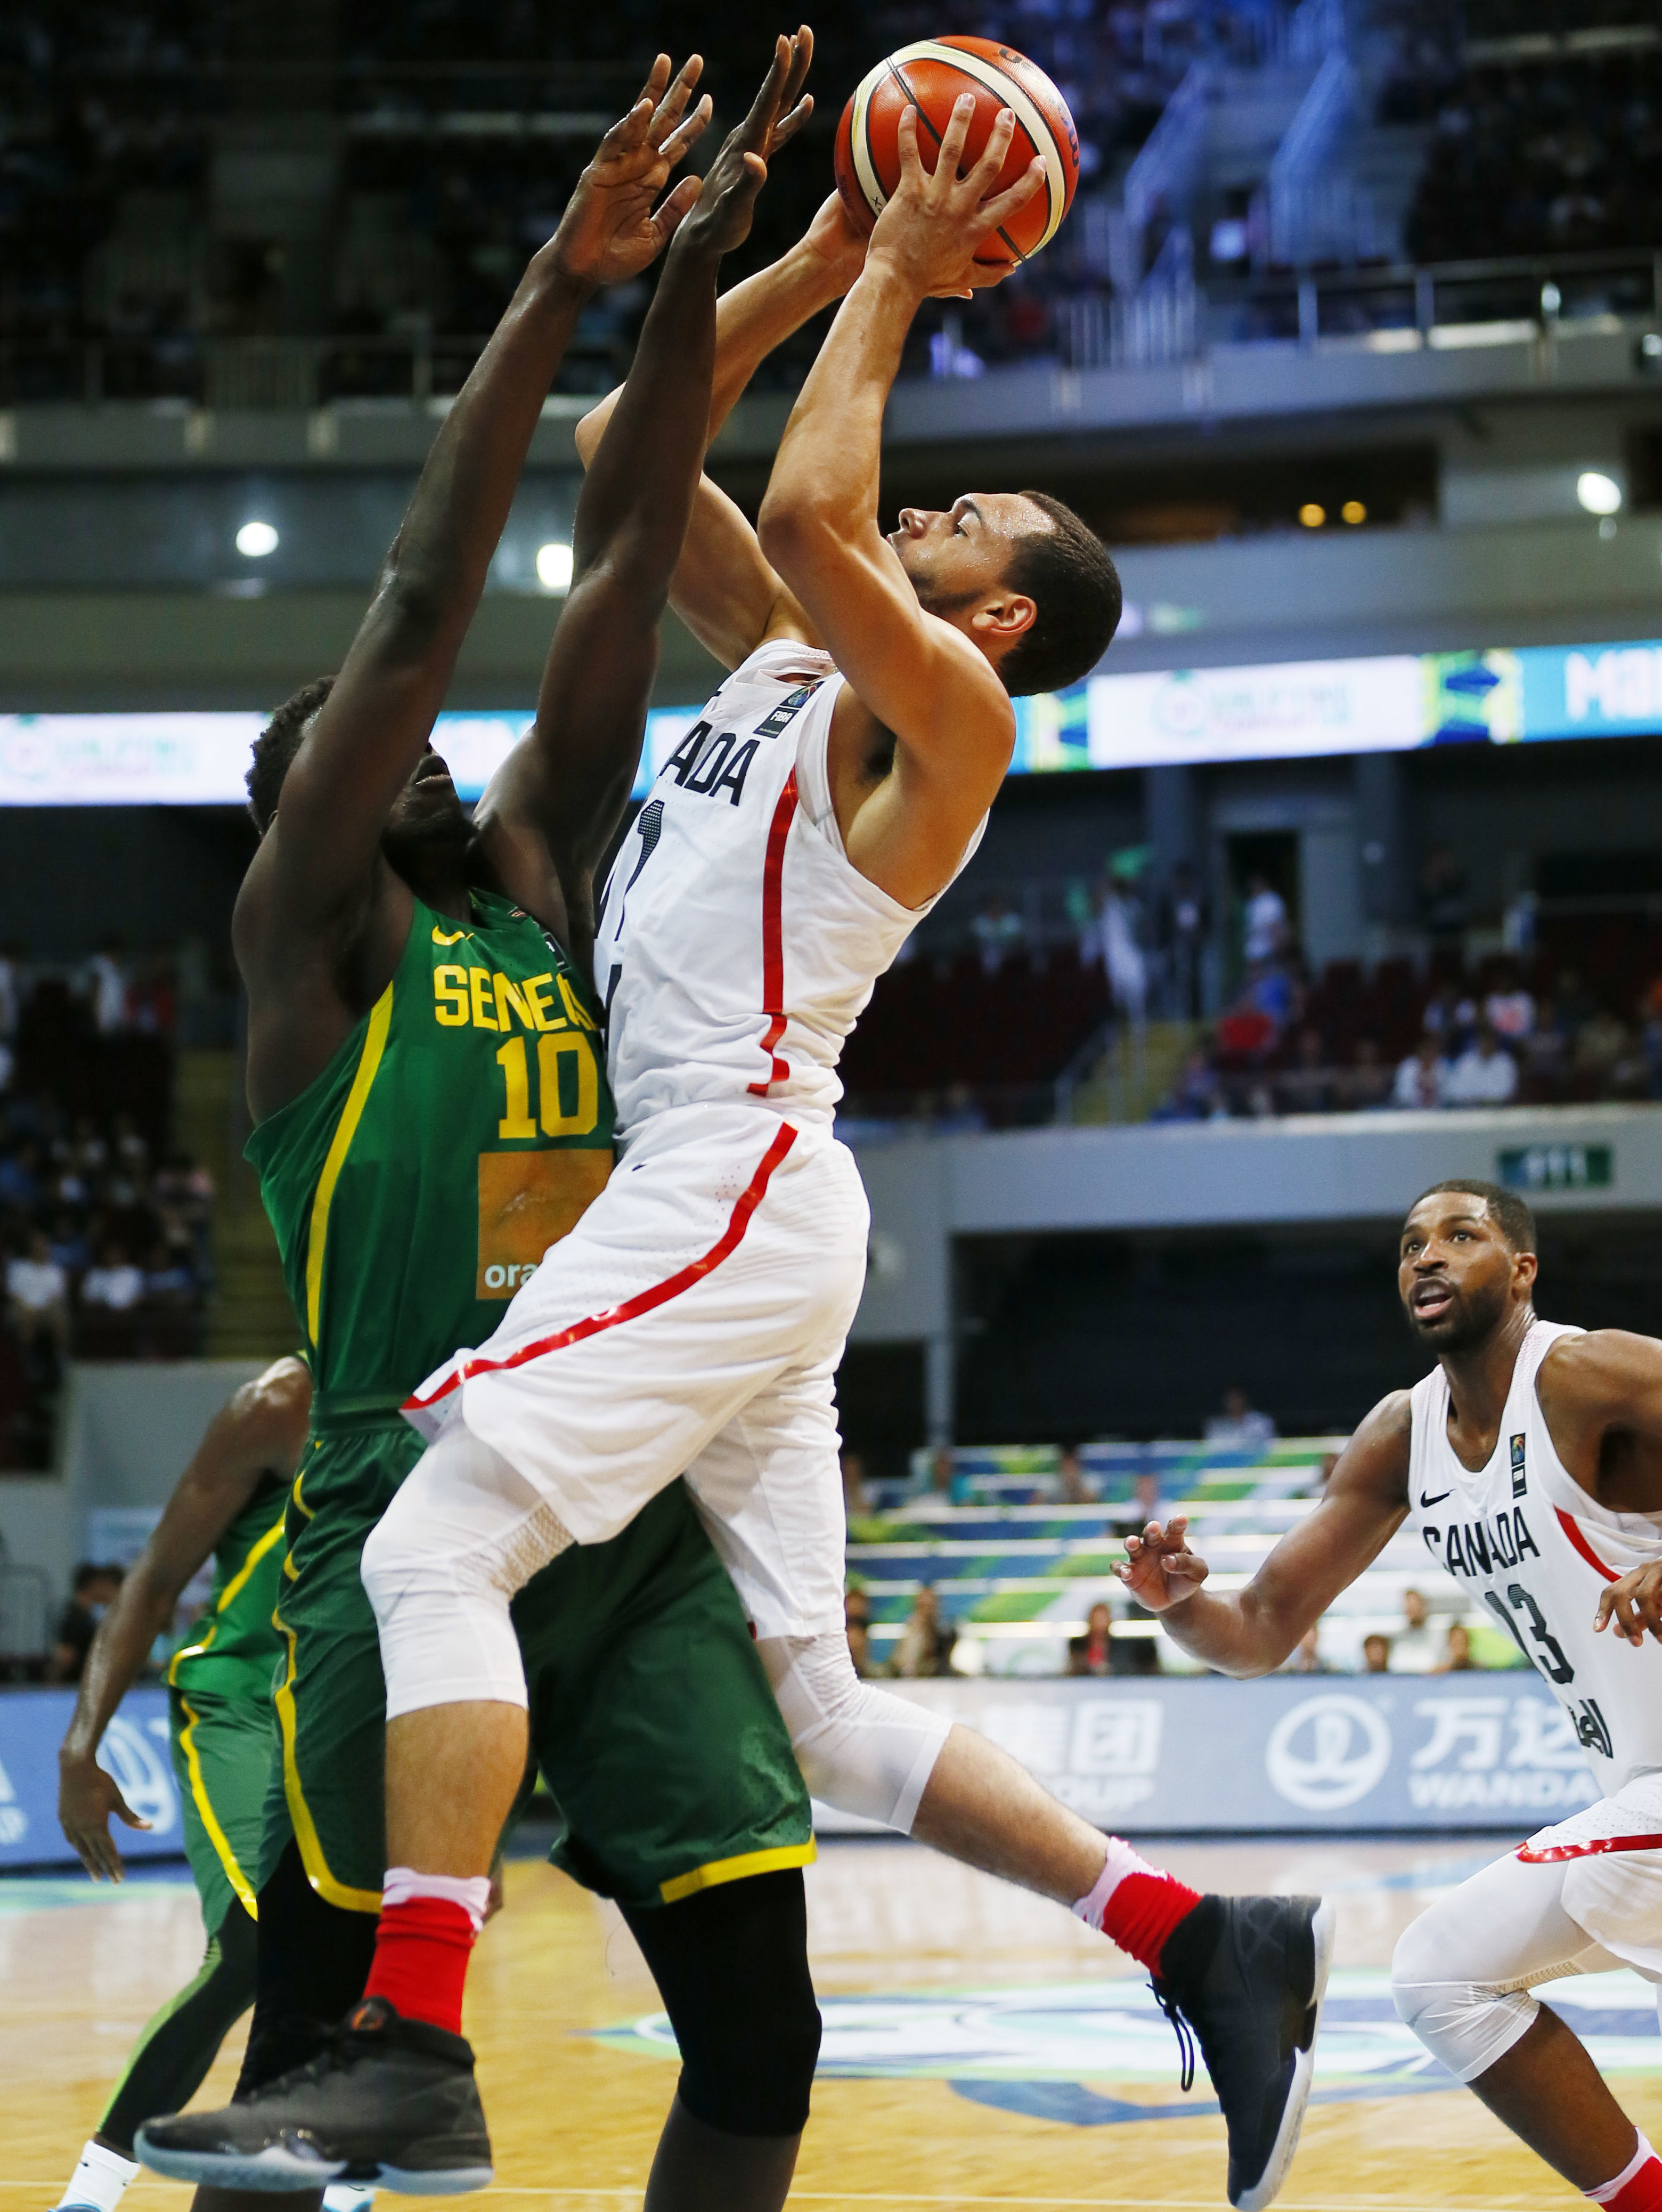 Canada's Tyler Ennis shoots over Senegal's Cheikh Mbodj, left, during the Group A FIBA Olympic Qualifying basketball match Wednesday, July 6, 2016 at the Mall of Asia Arena in suburban Pasay city south of Manila, Philippines. At right is Senegal's Tristan